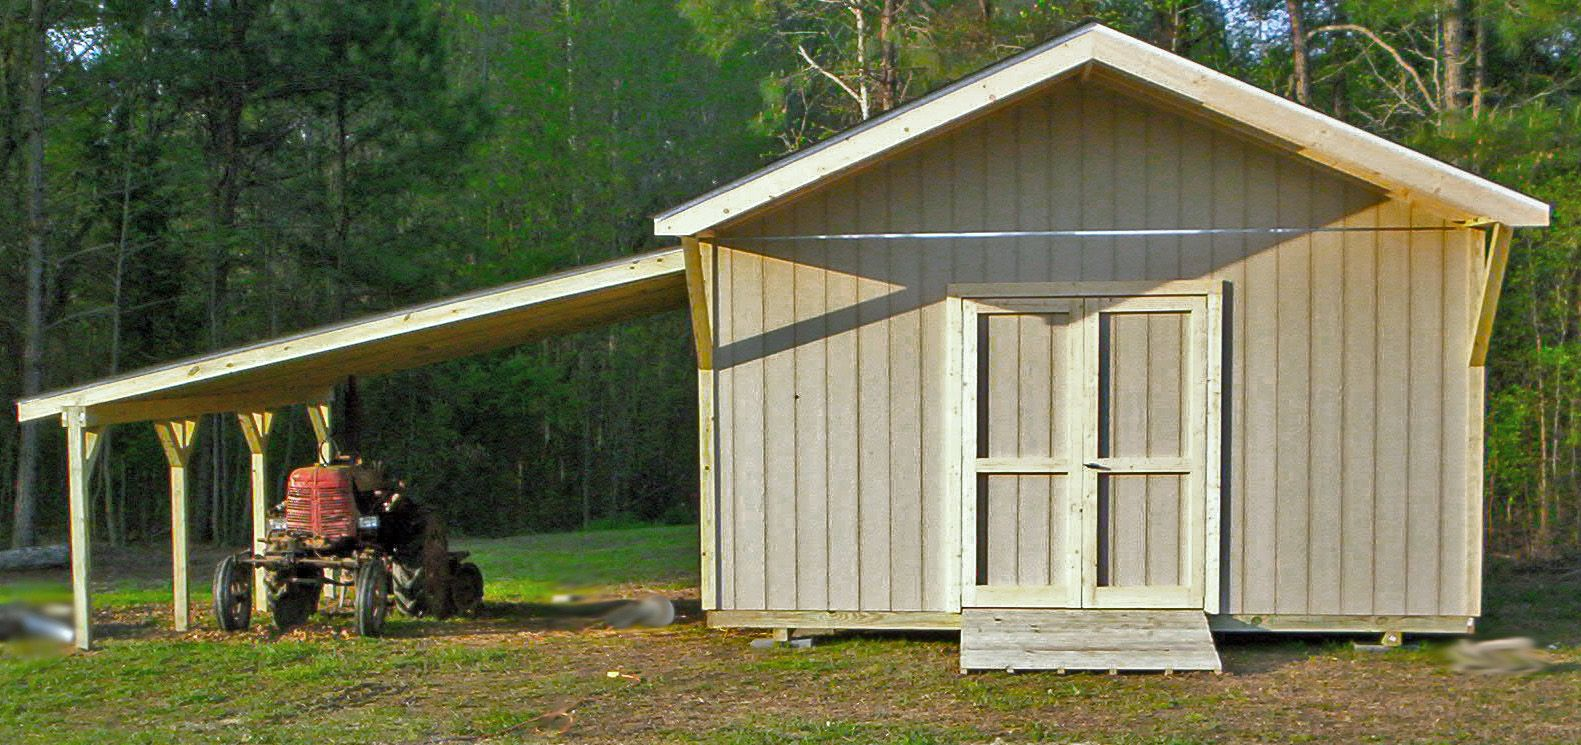 storage shed with carport cardinal buildings storage buildings wooden garden sheds yard barns